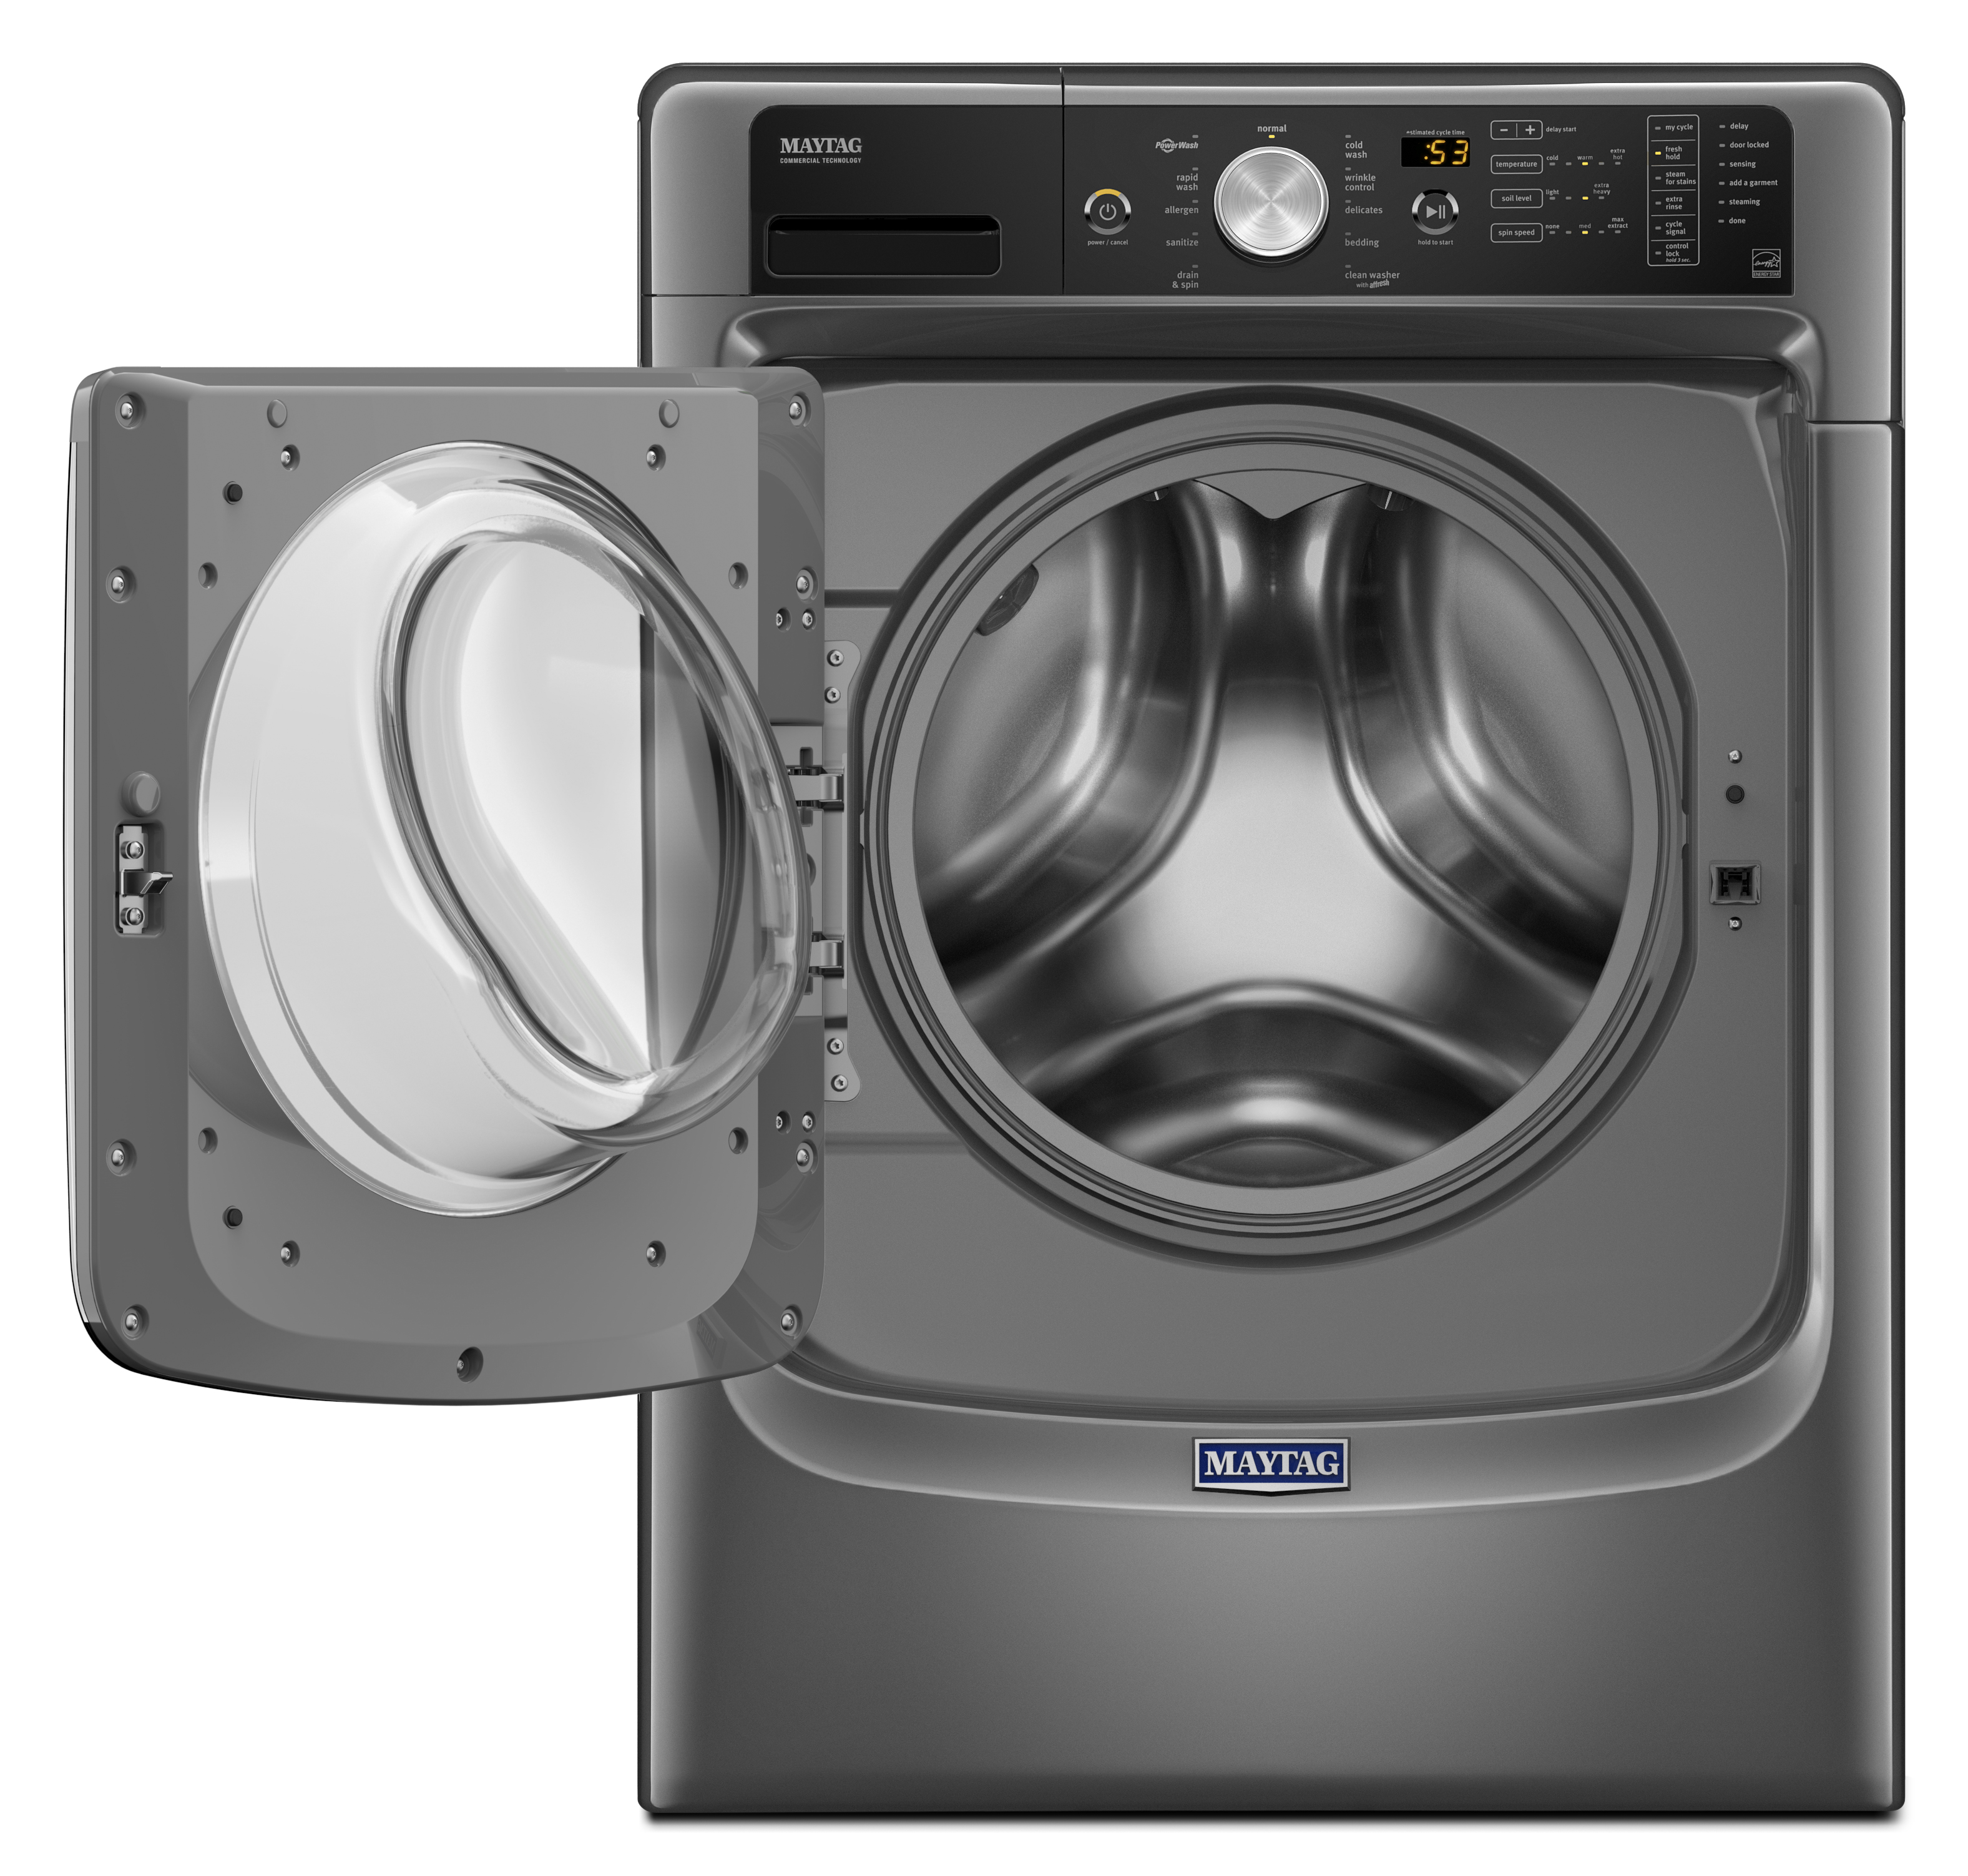 Maytag MHW5500FC 4.5 cu. ft. Front Load Washer with Fresh Hold® Option and PowerWash® System - Metallic Slate